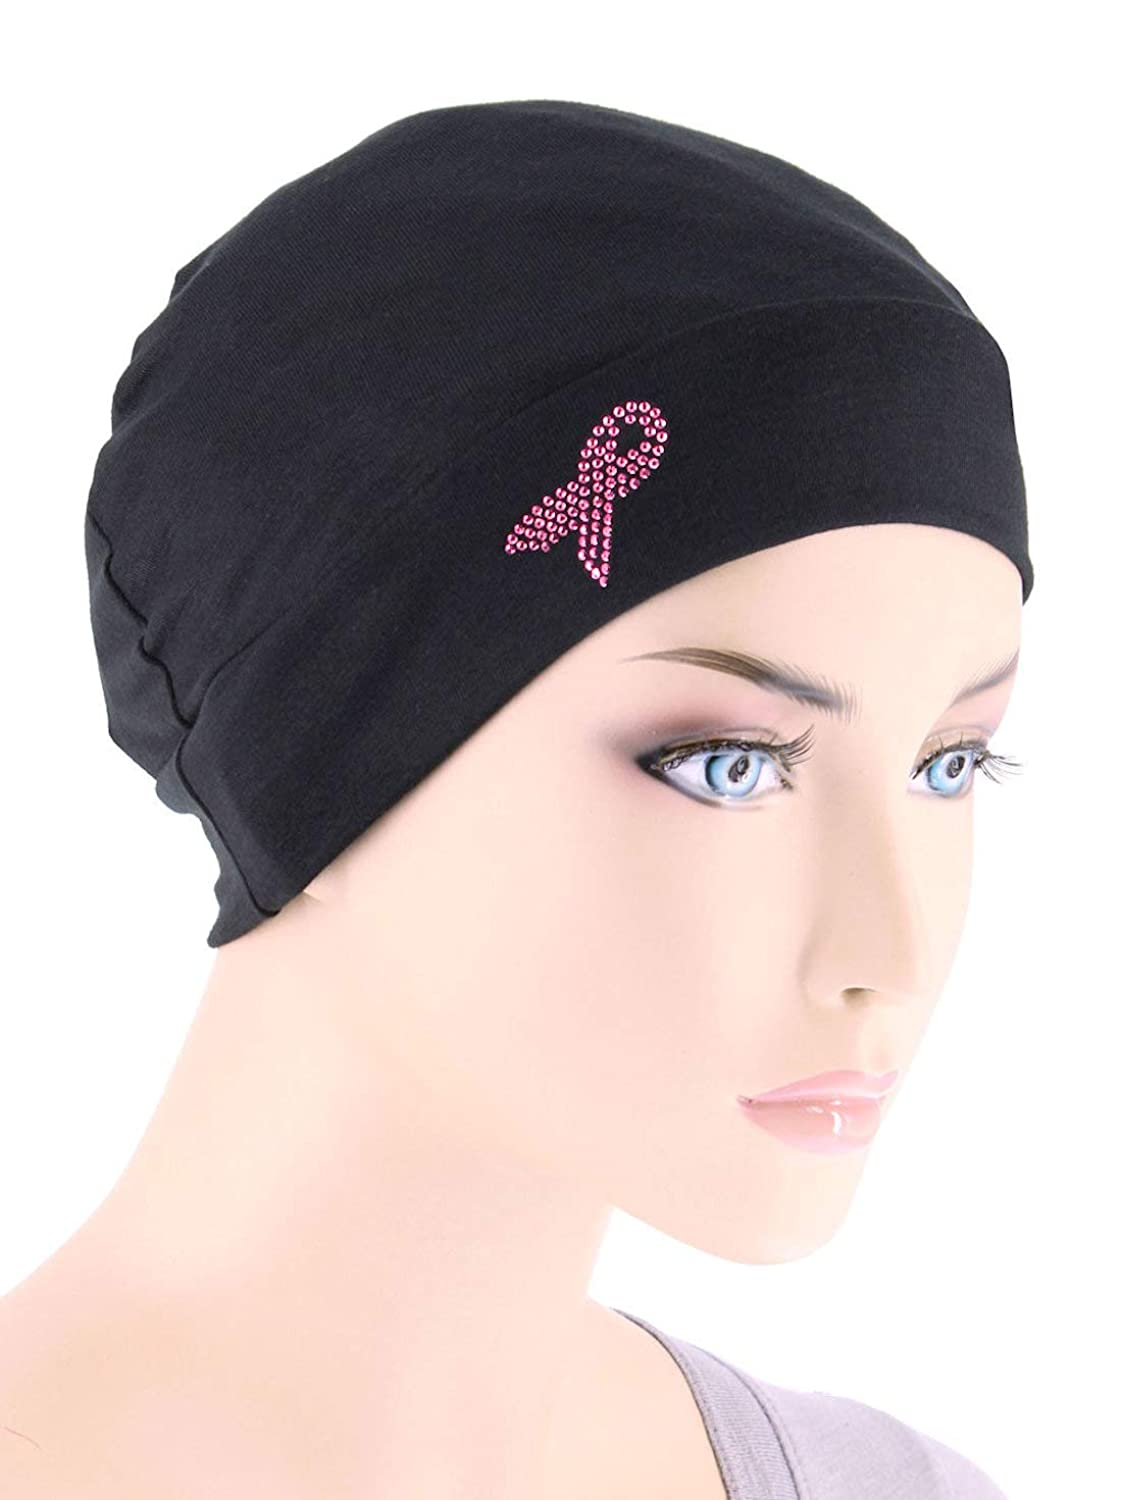 8fc6a8e7901db PRODUCT SPECIFICATIONS  Our Comfy Beanie Caps are designed for chemo  patients who are currently experiencing total or partial hair loss.